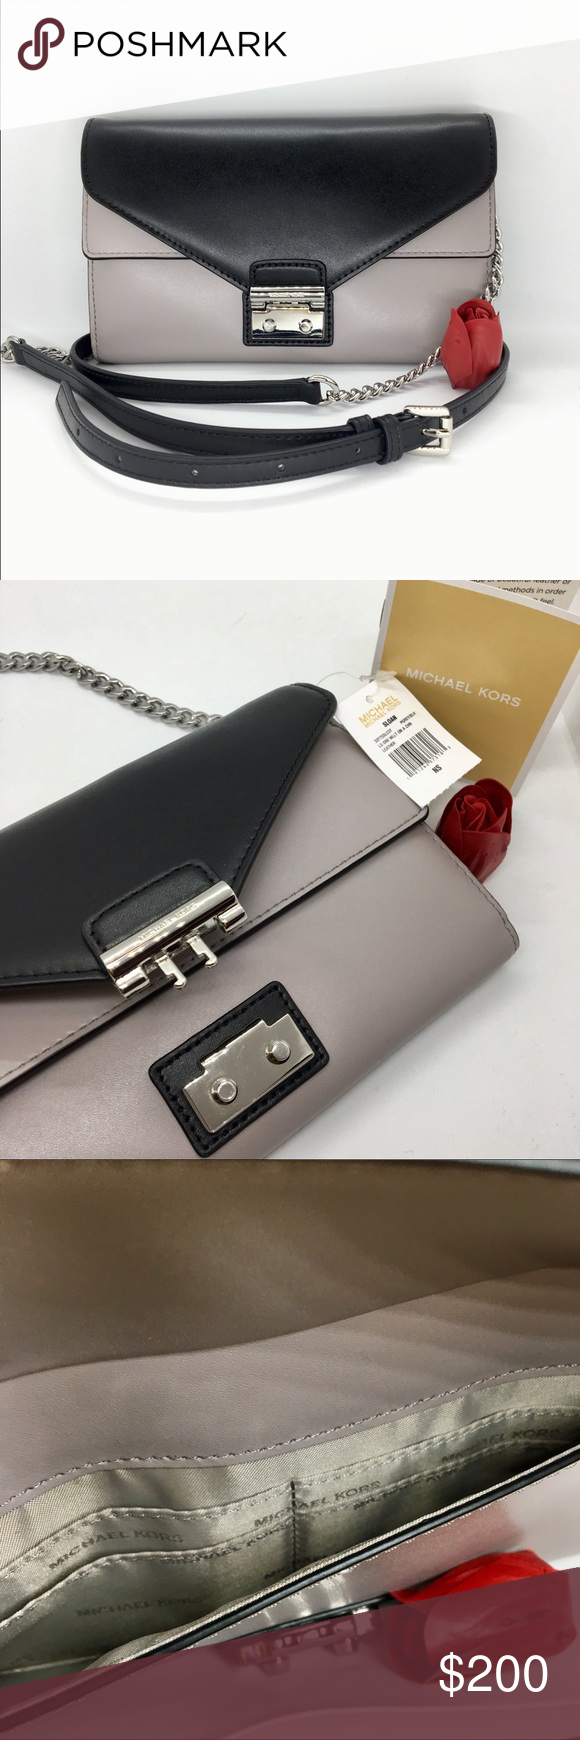 c74be1ad036f MichaelKors Sloan Color-Block Leather Chain Wallet BNWT - Crafted from  smooth 100% leather